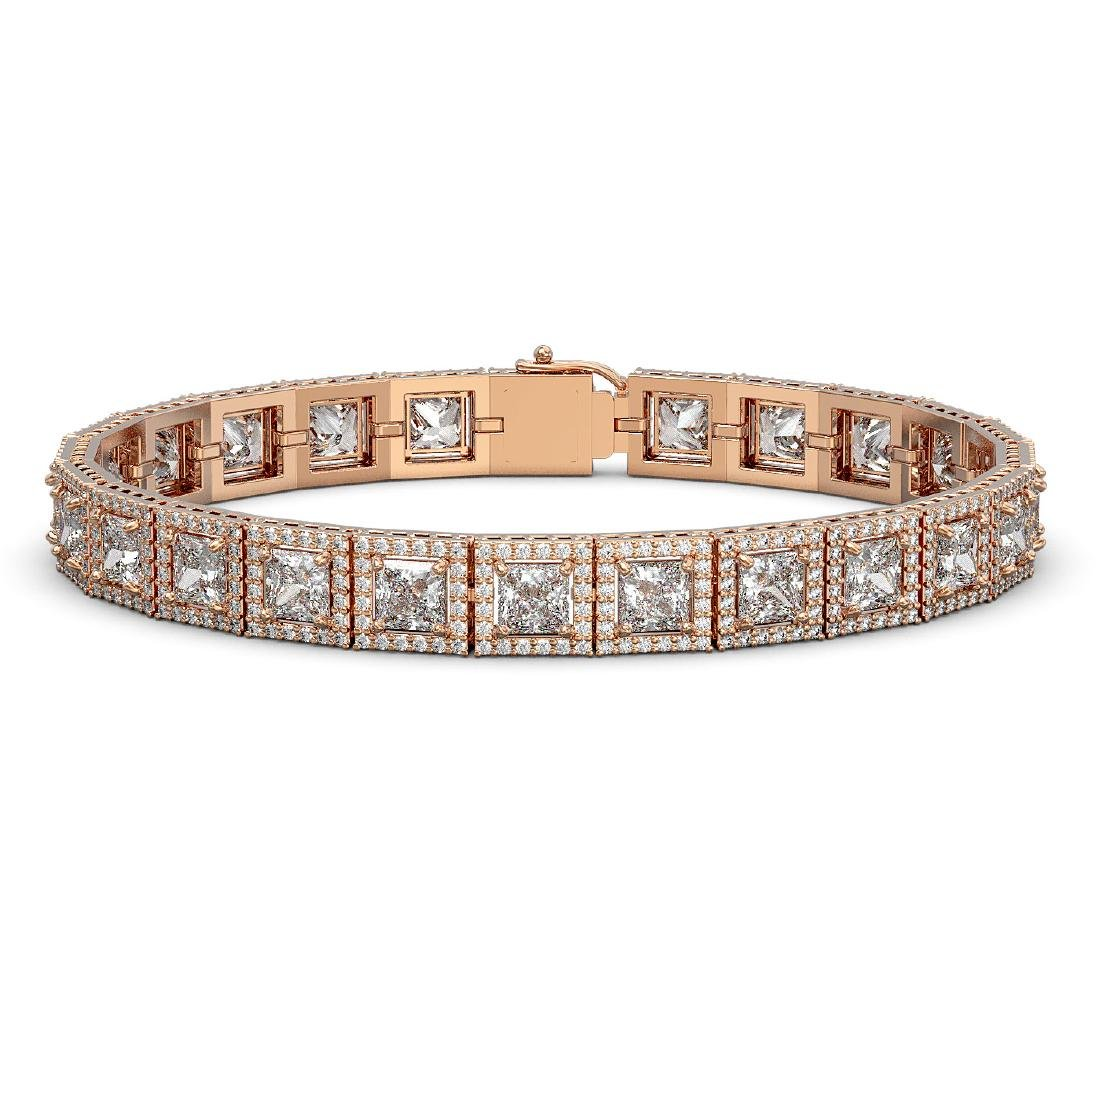 18.24 CTW Princess Diamond Designer Bracelet 18K Rose